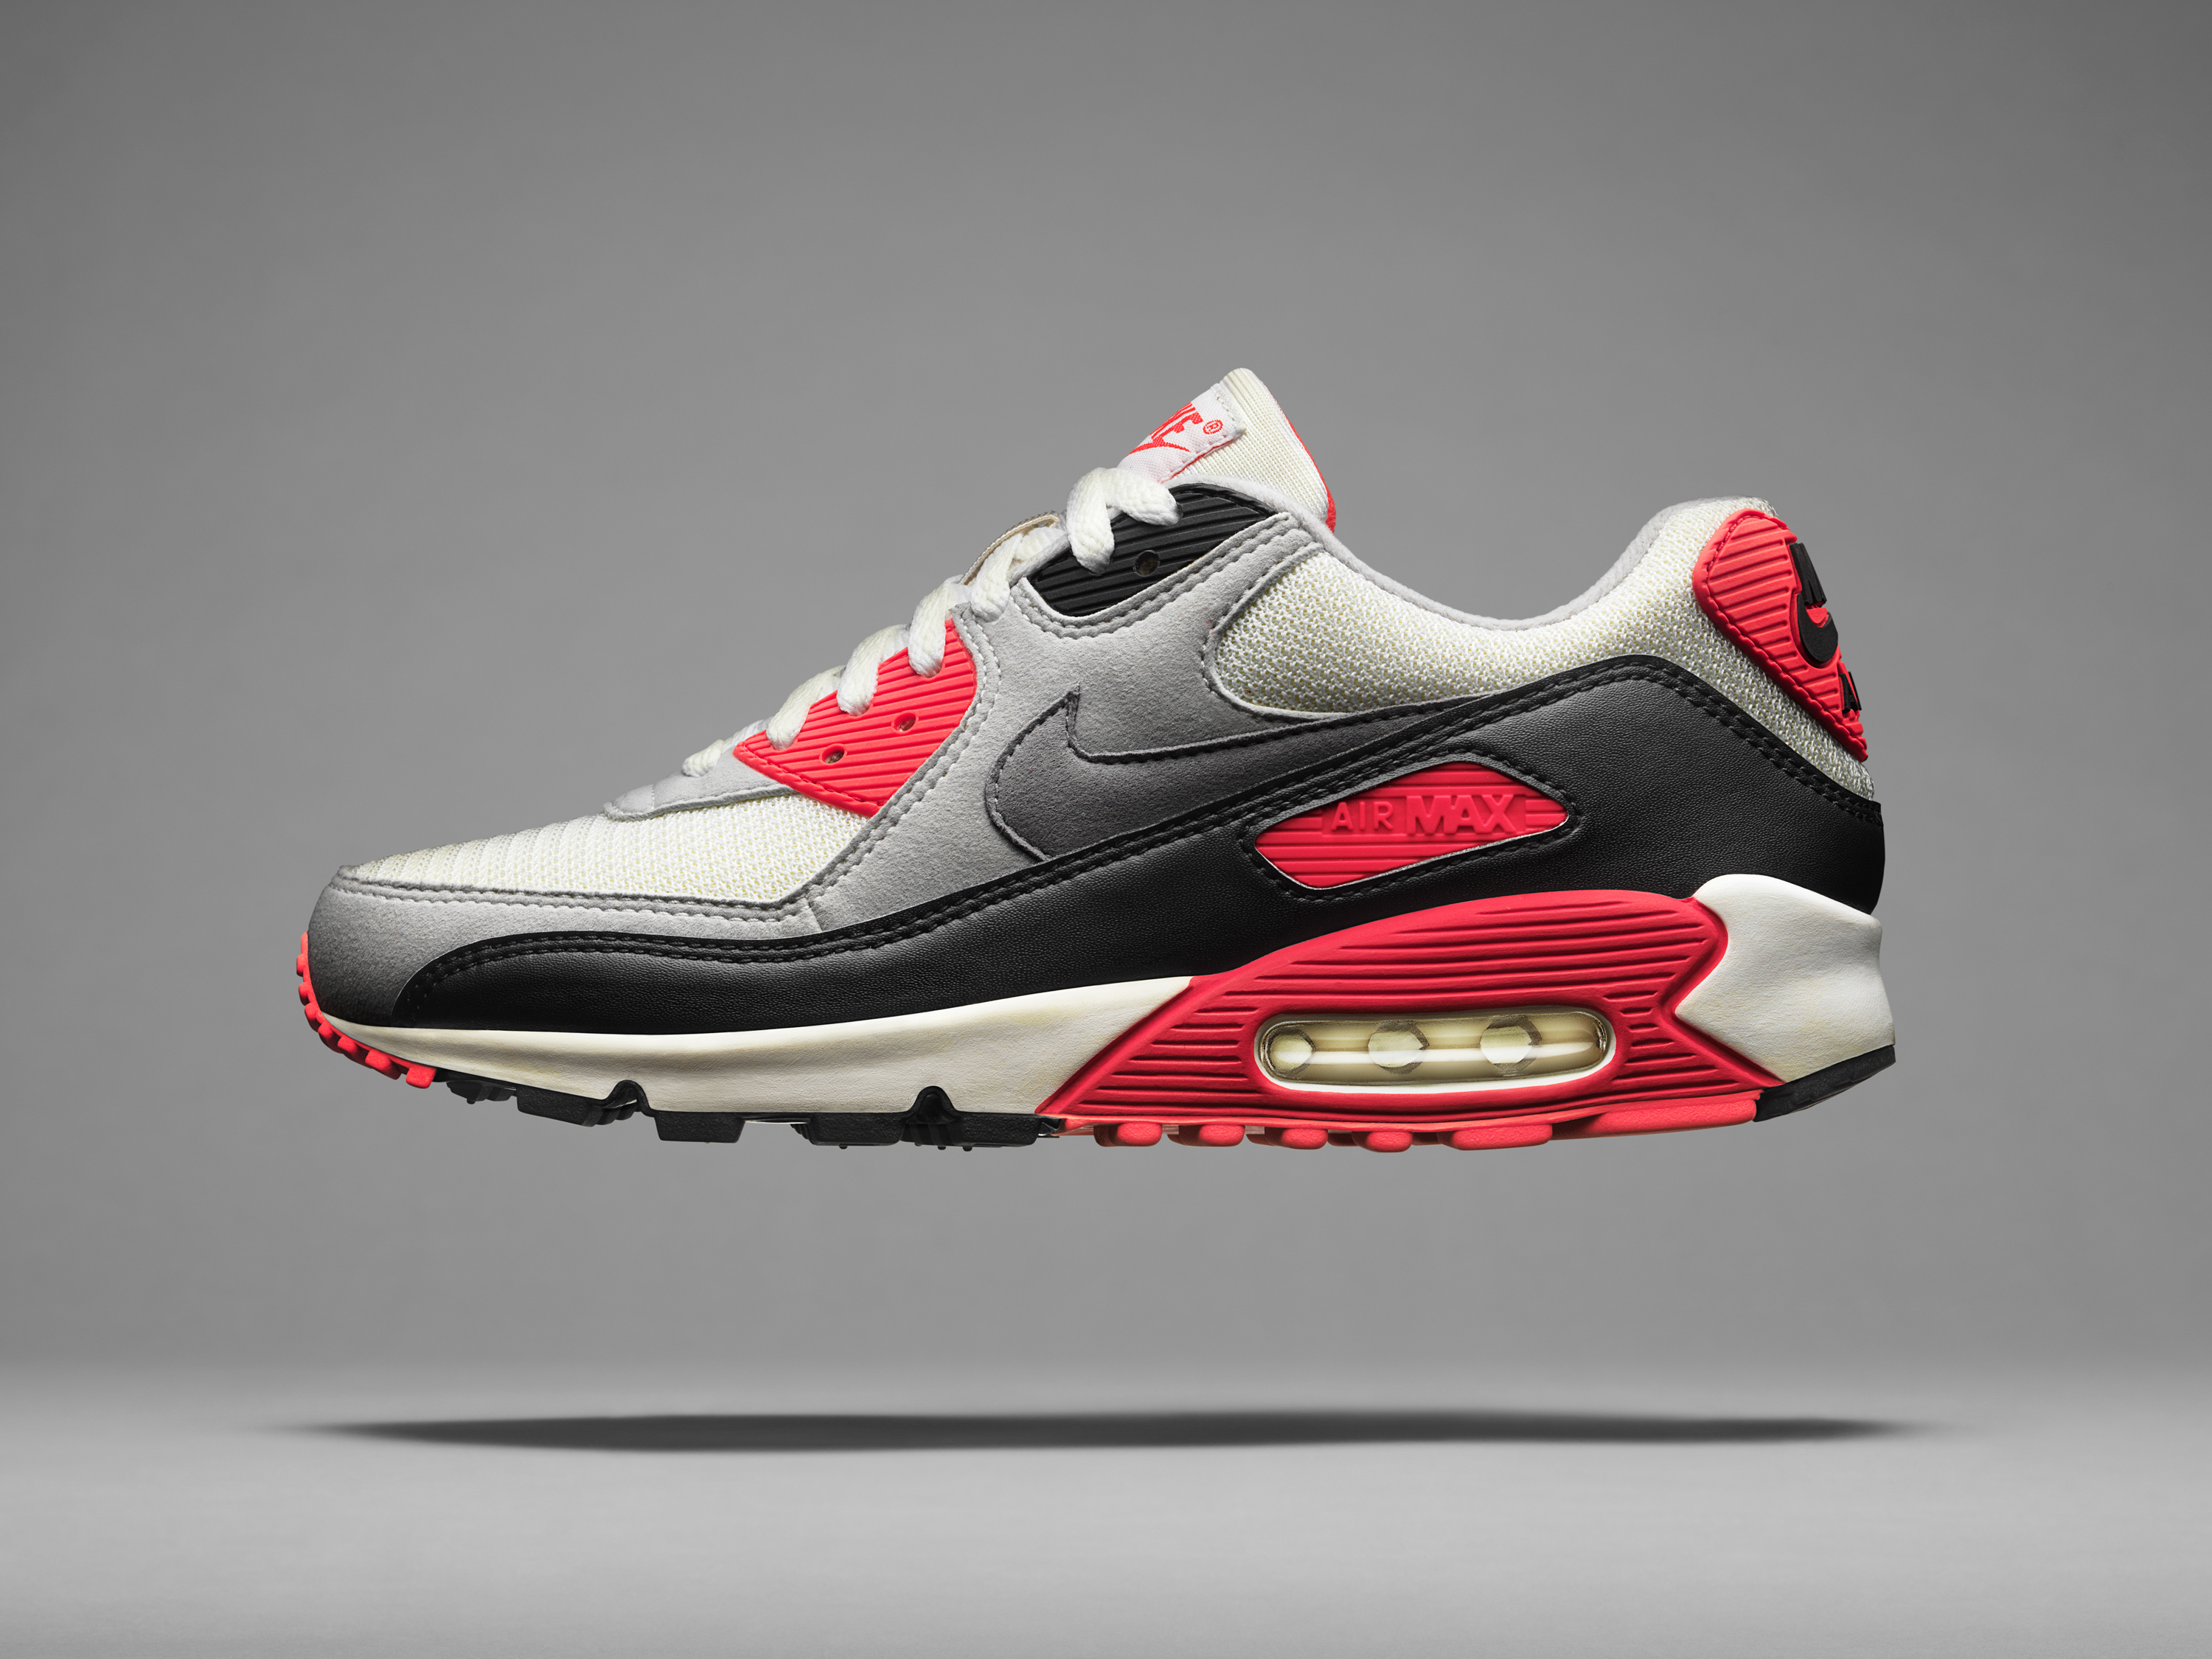 Cheap nike air max 80 Buy Online  OFF53% Discounted c2ec52a82